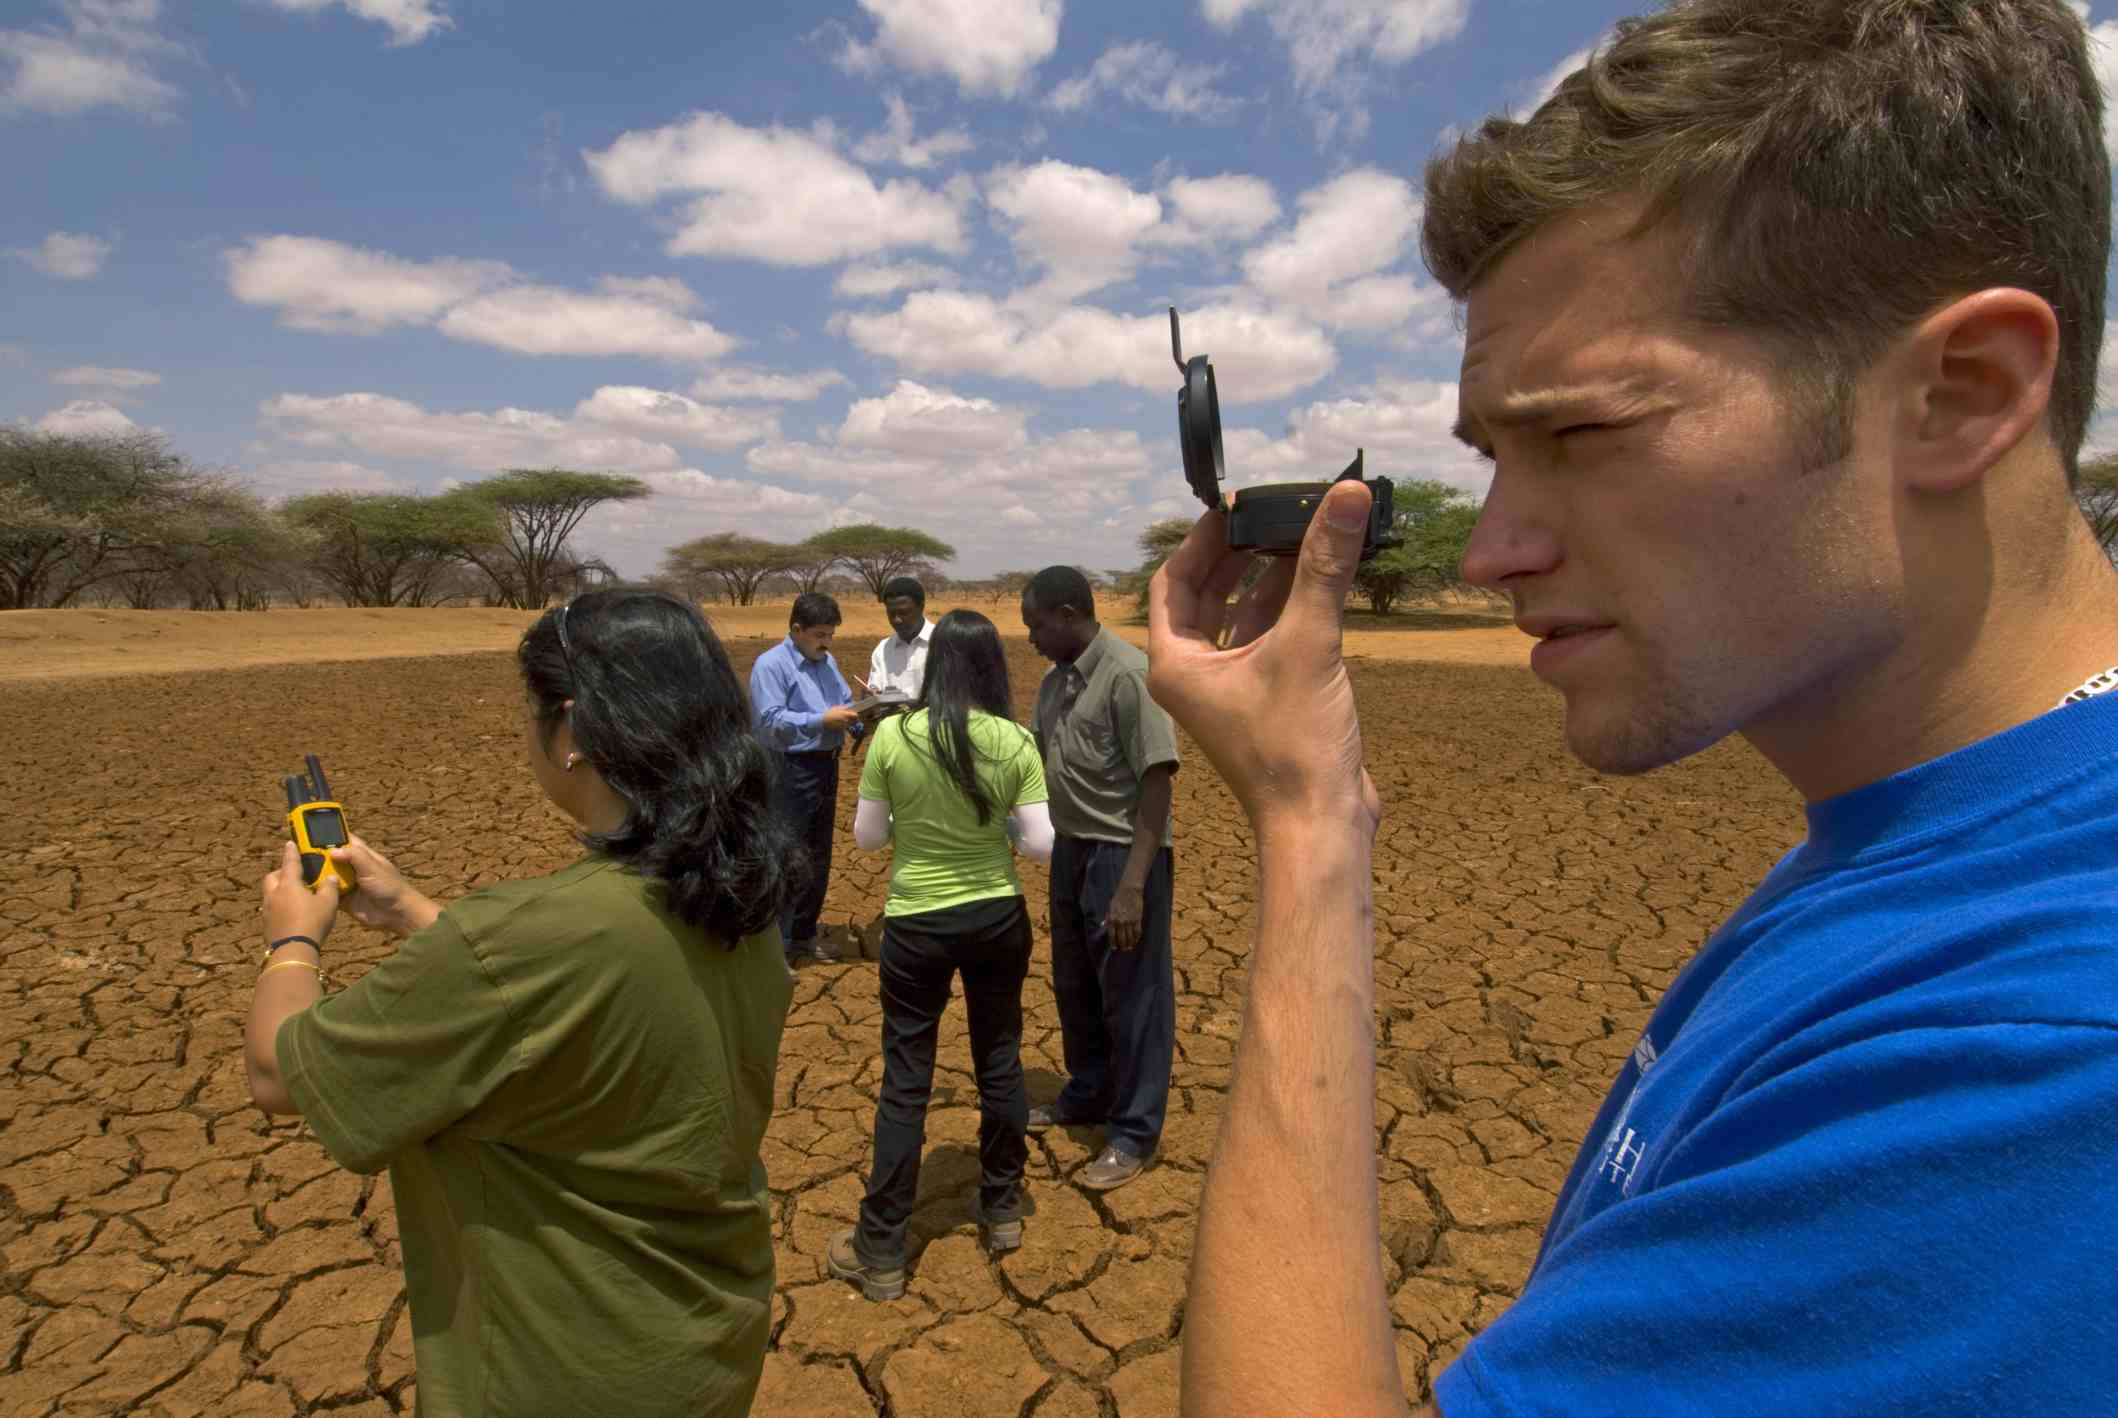 Volunteers conducting water conservation survey at a dry waterhole on an Earthwatch Expedition, Lewa Conservancy, Kenya.